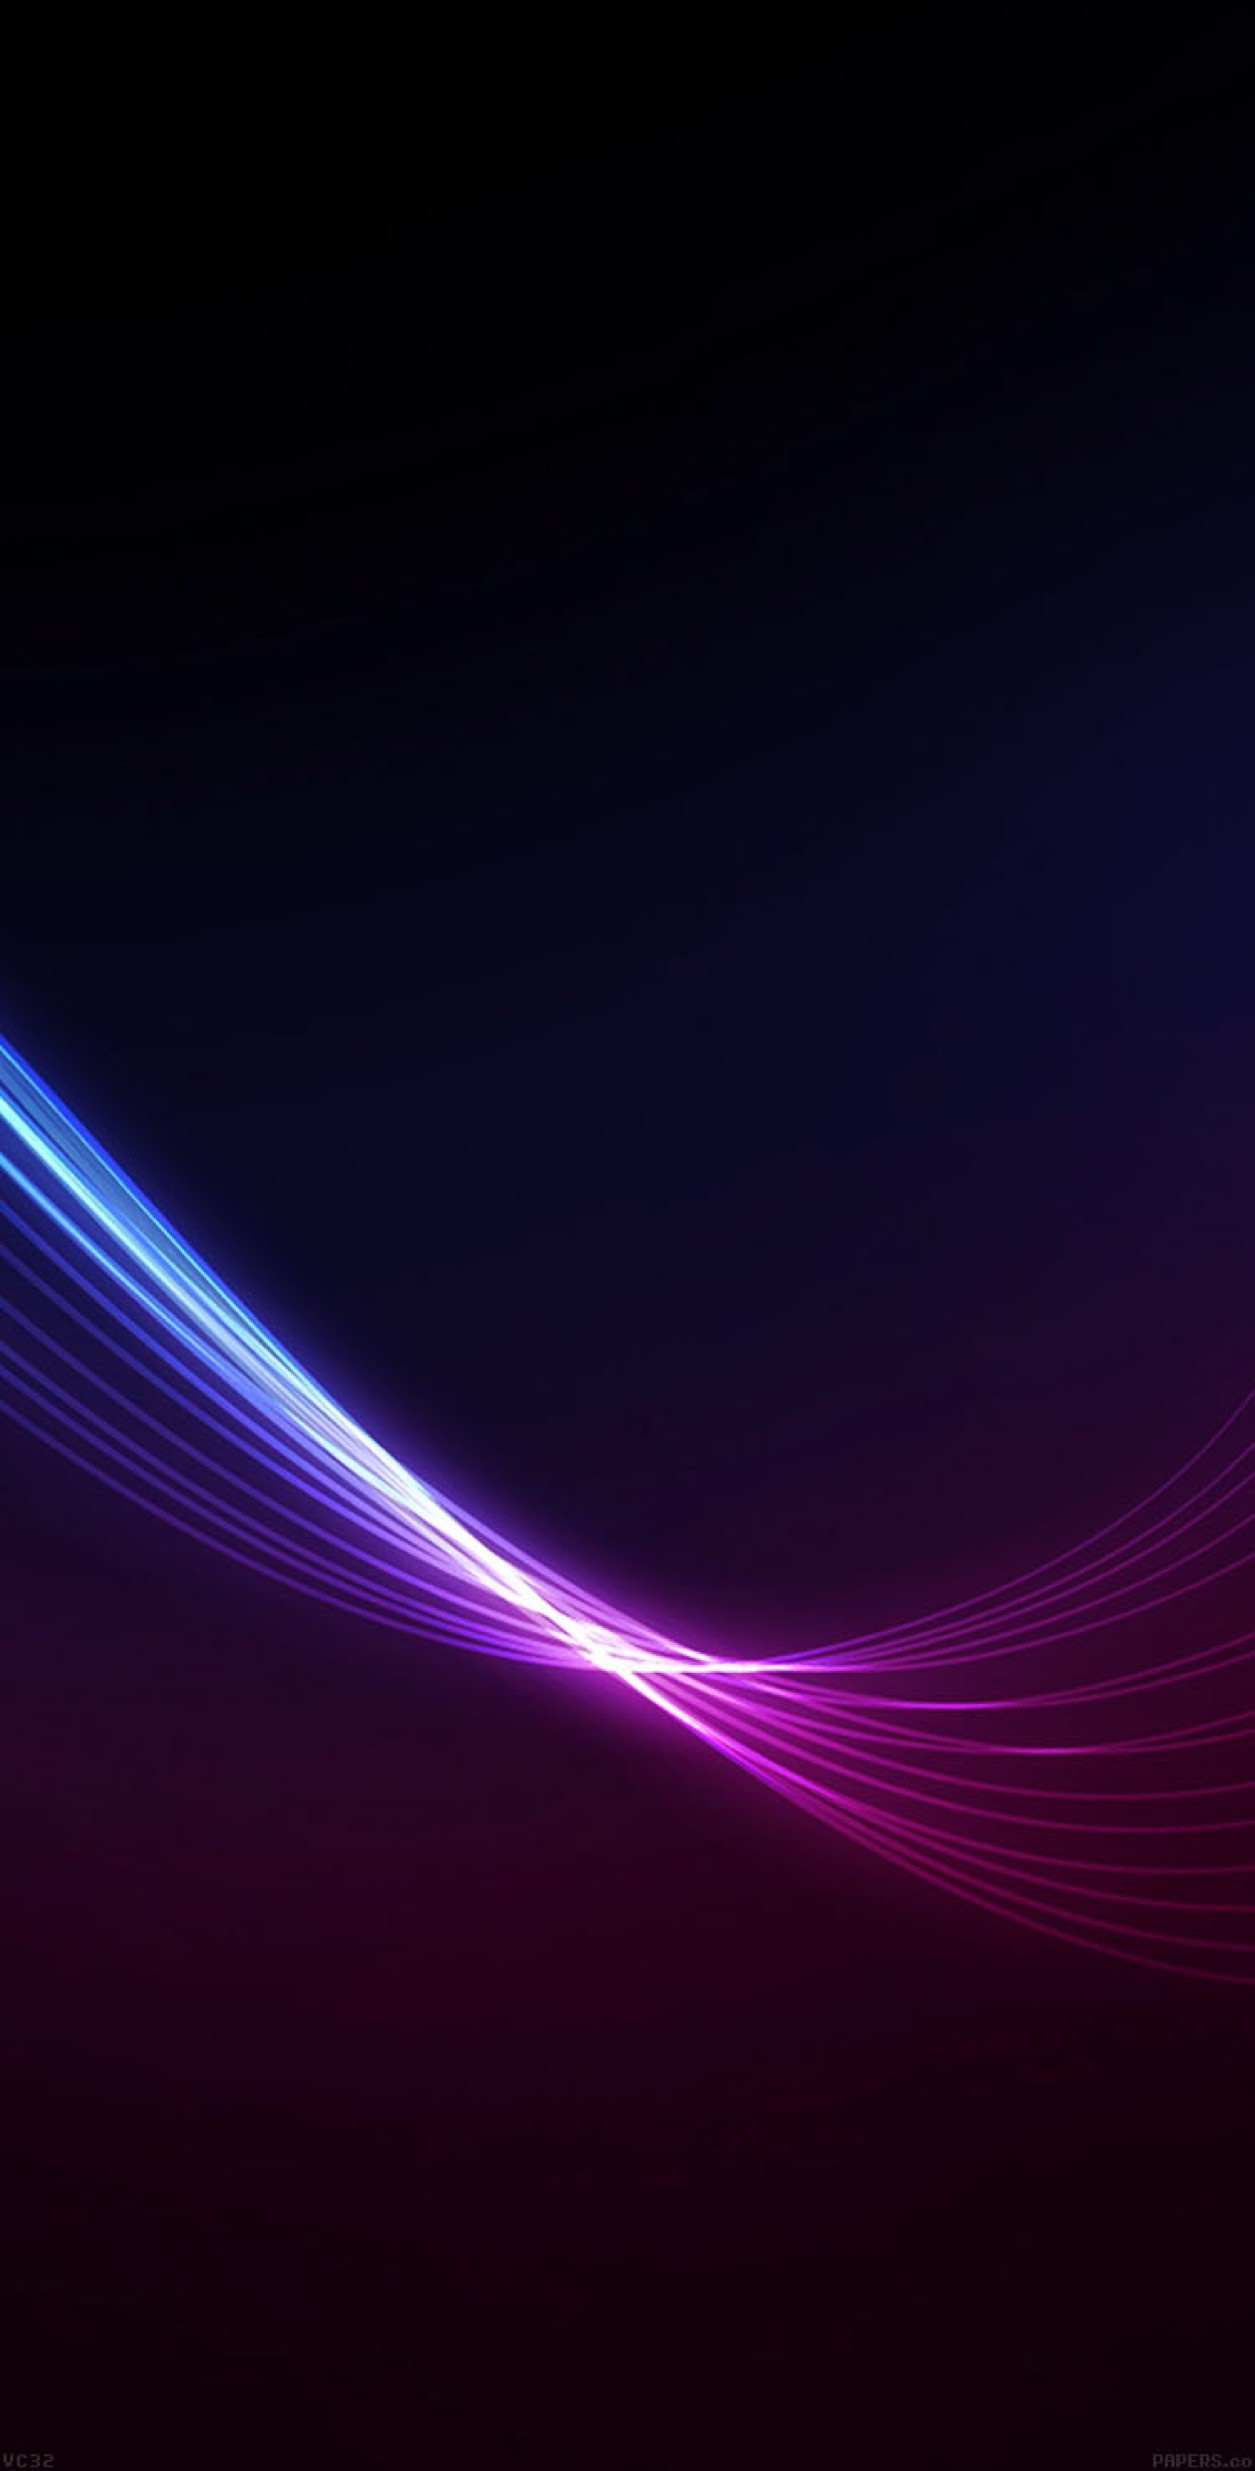 Res: 1255x2471, Purple, dark, wallpaper, galaxy, clean, beauty, colour, abstract,